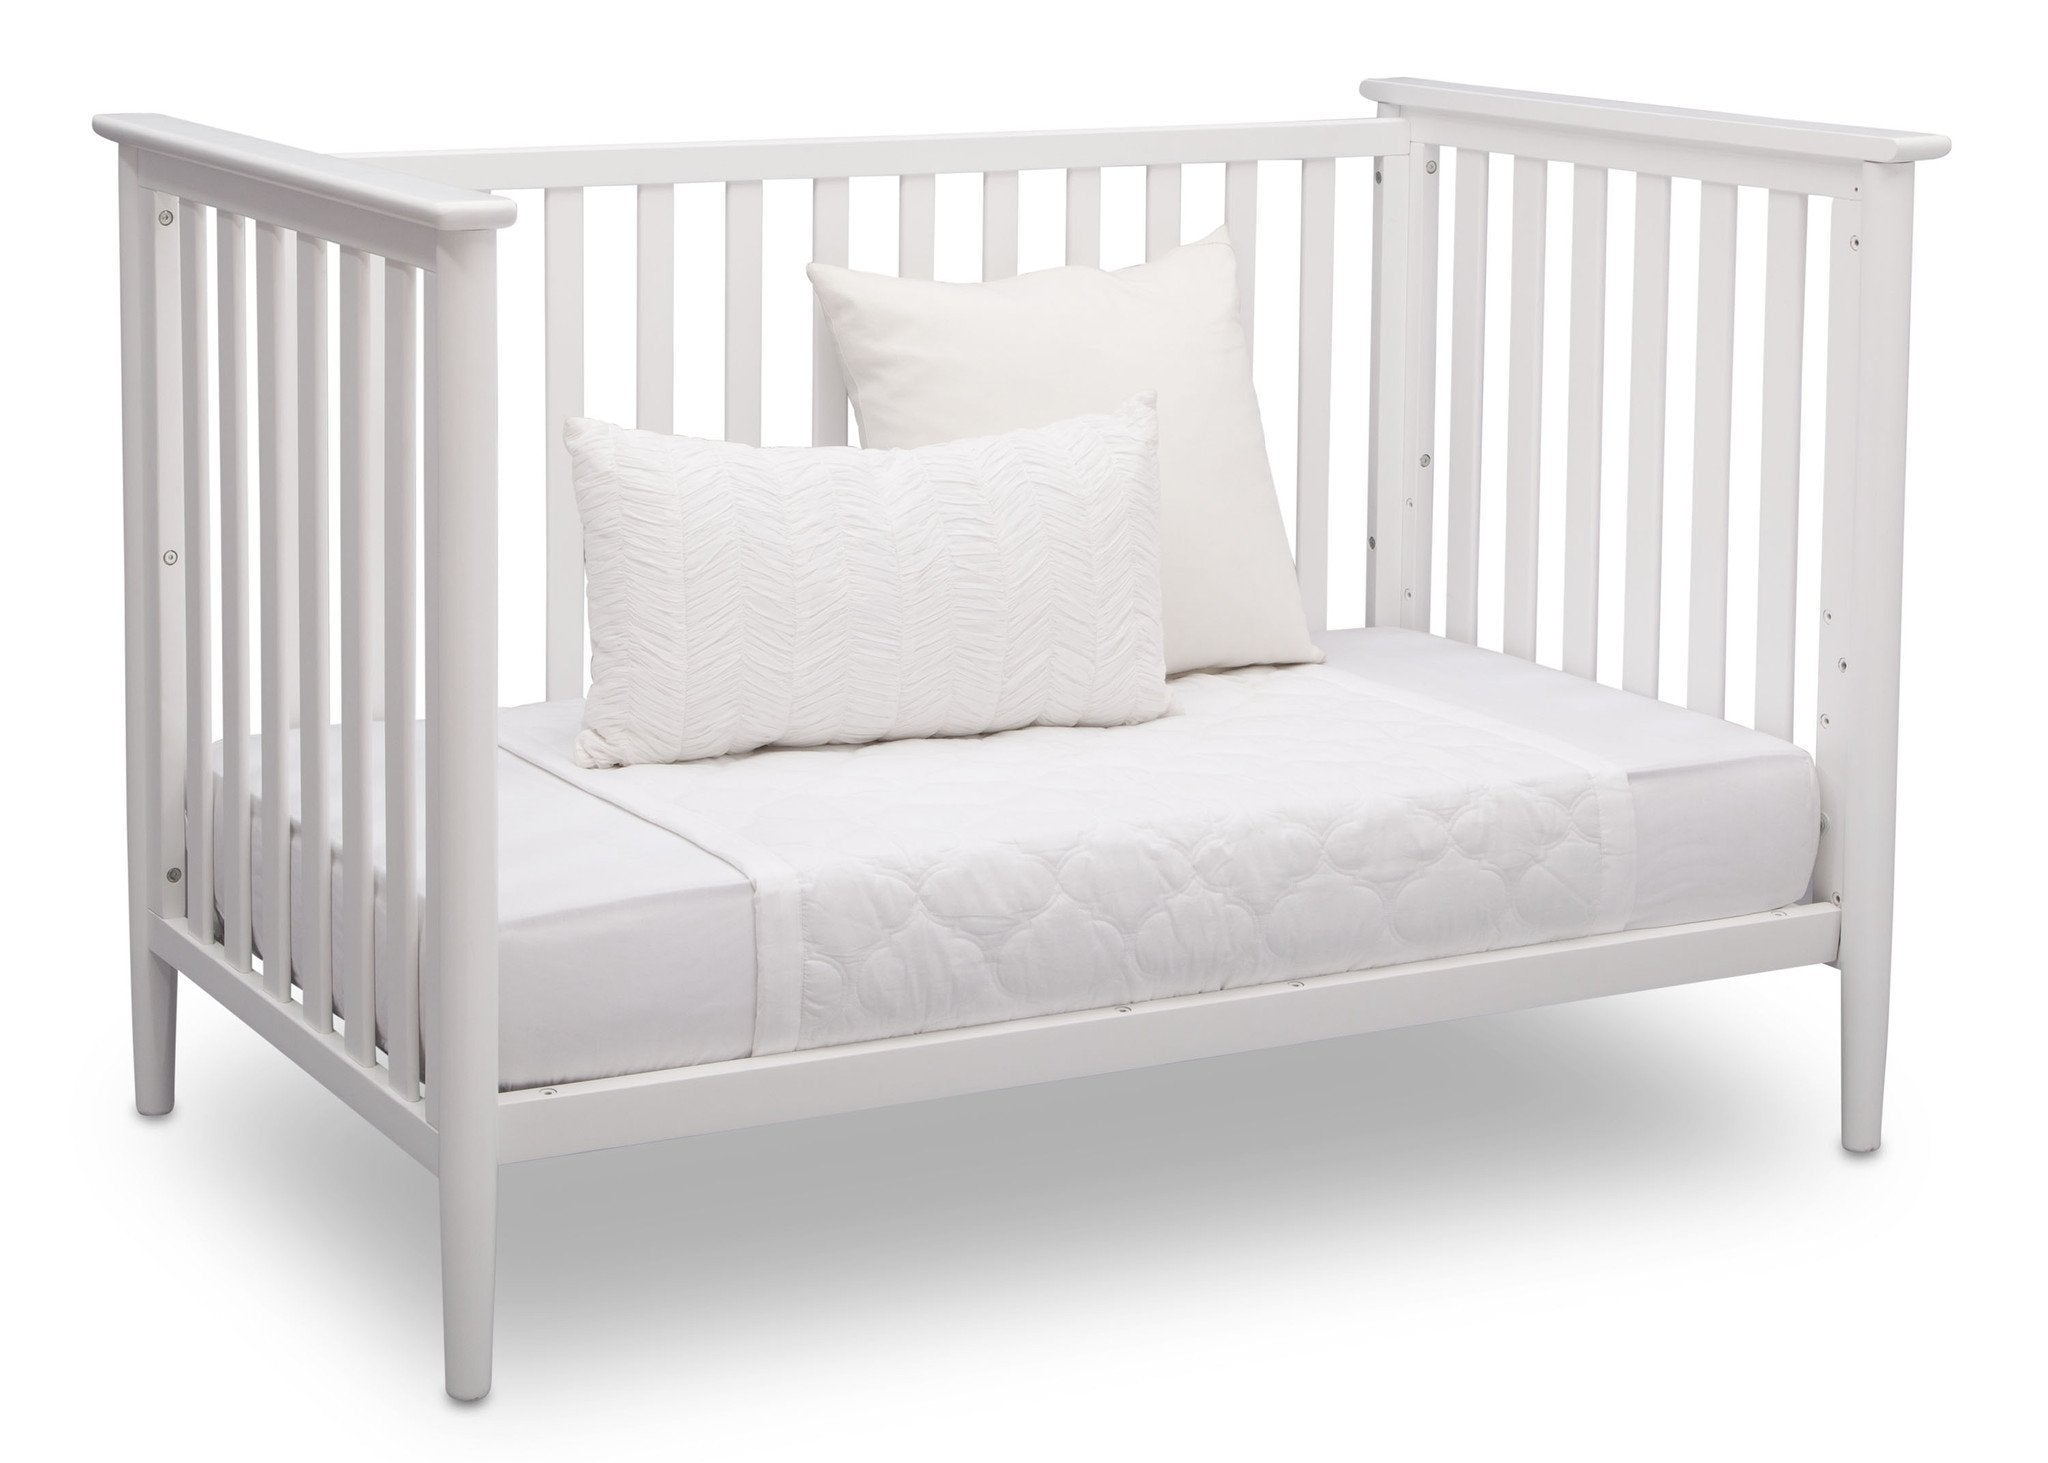 Delta Children Bianca White (130) Greyson 3-in-1 Crib, Angled Conversion to Daybed, a4a